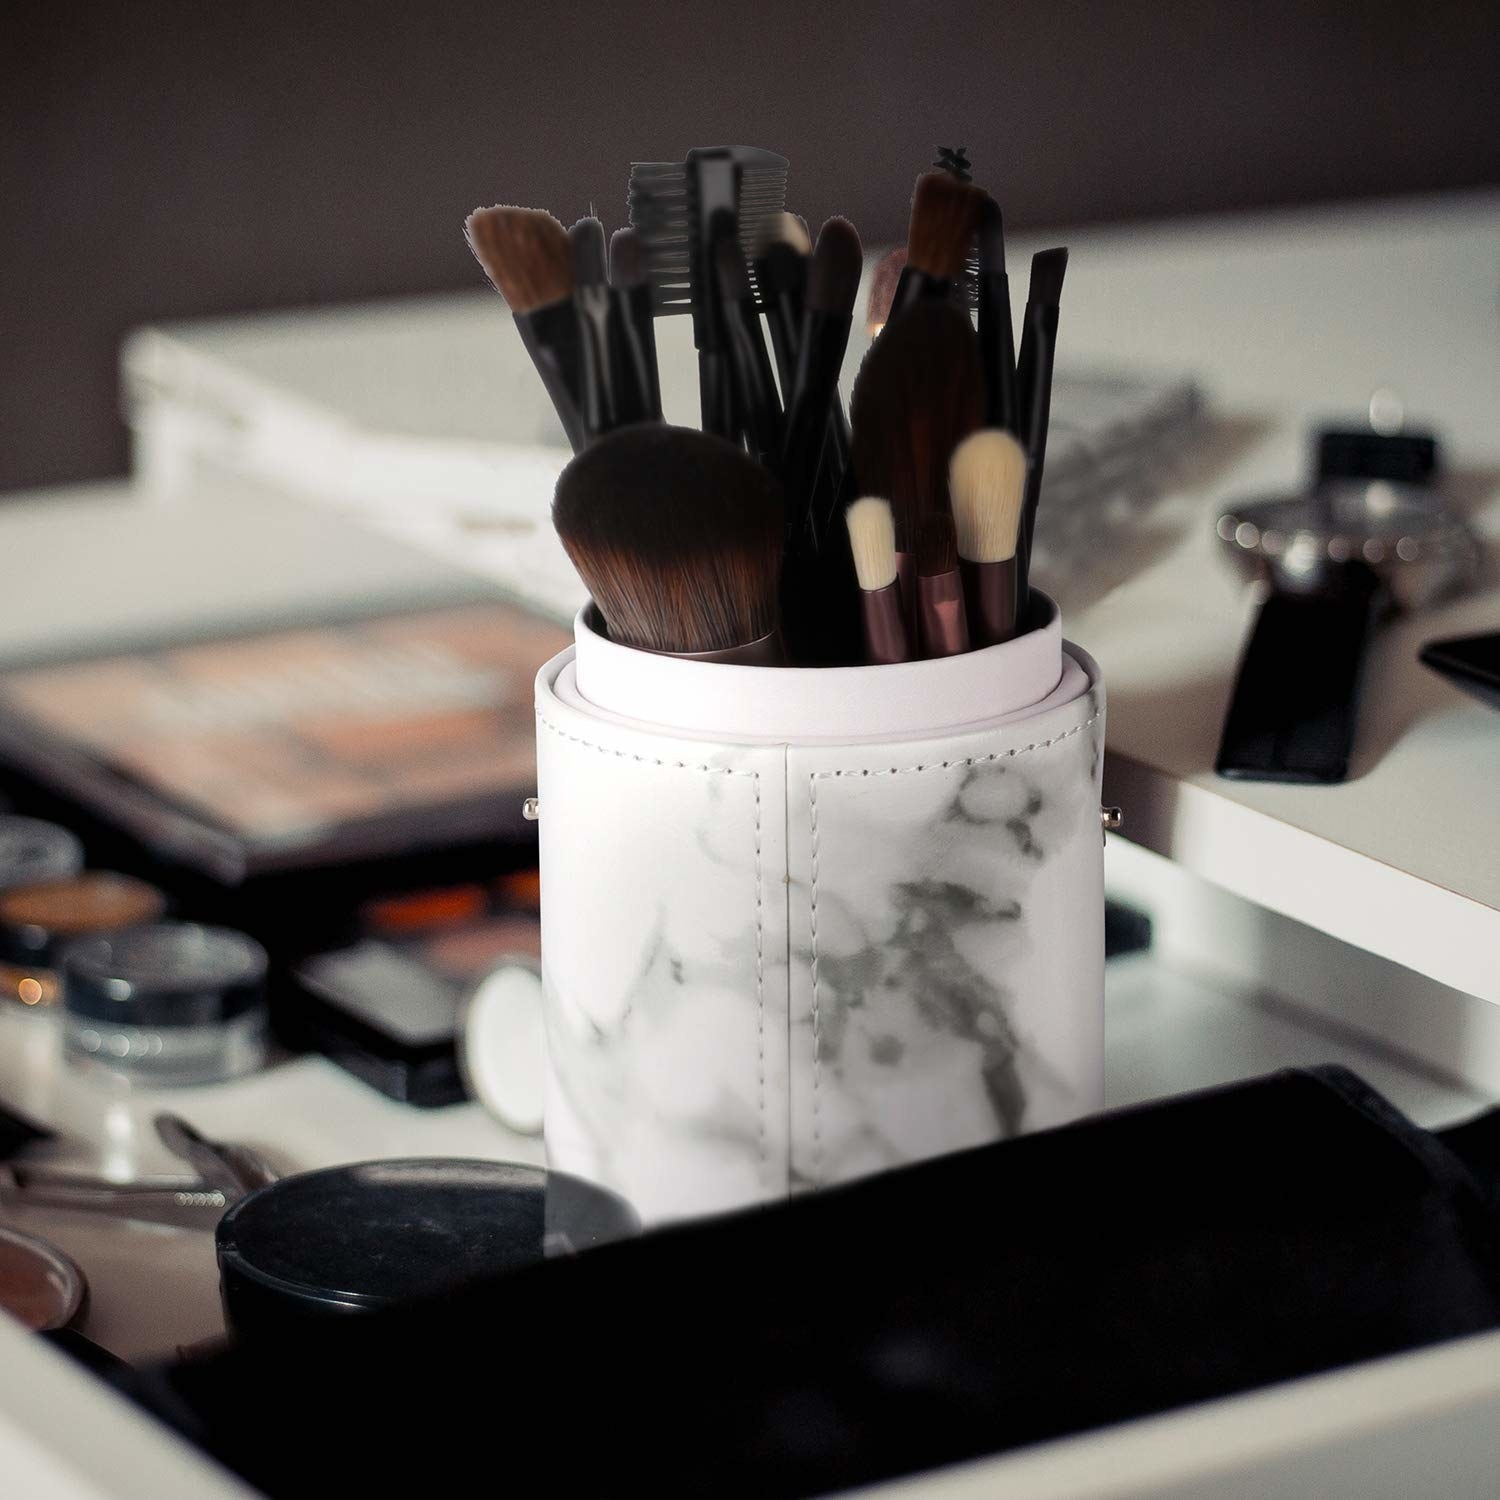 makeup countertop with the cylinder shape brush container in a white and gray marble print